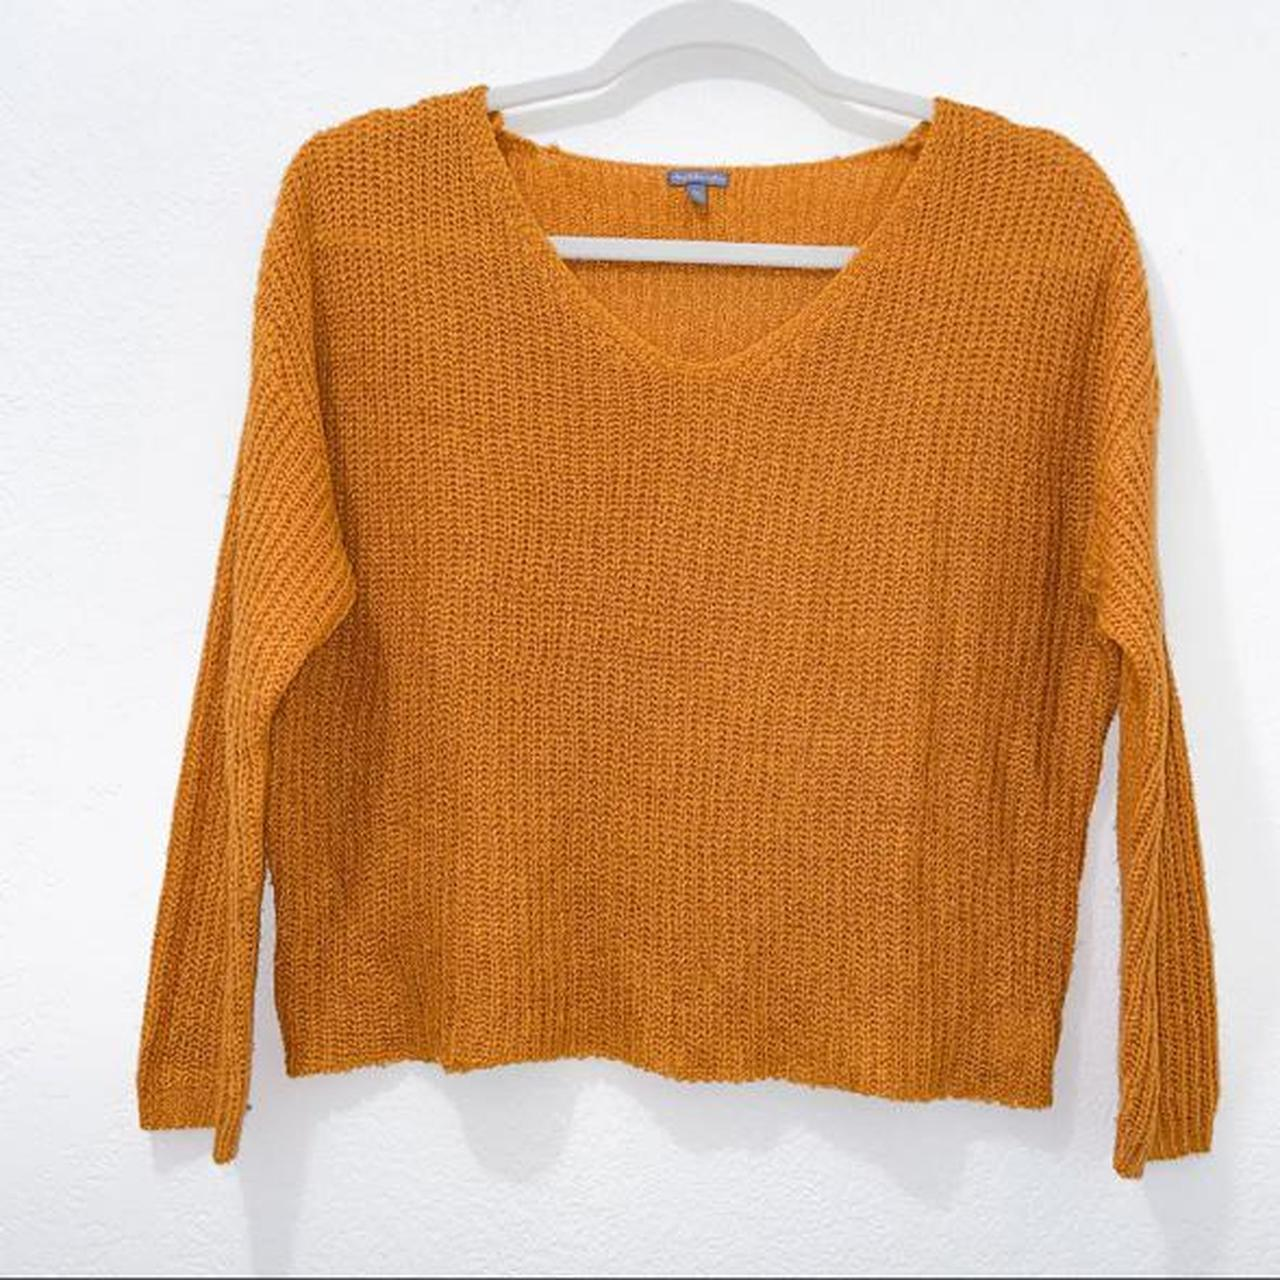 Product Image 1 - Knit cropped top  🌸charlotte russe  🌸crop